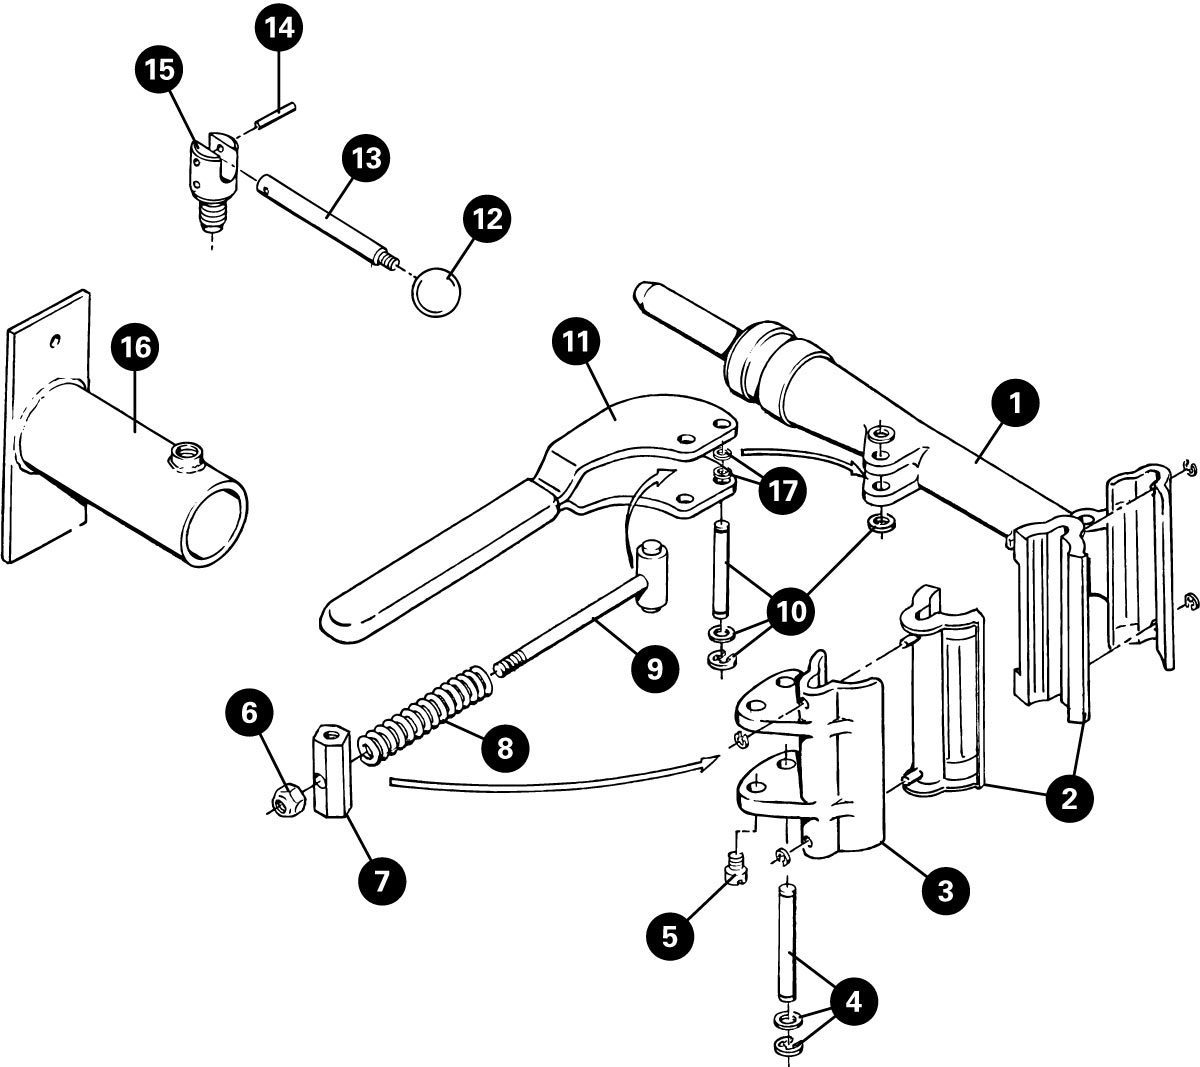 Parts diagram for PRS-8 Wall Mount Repair Stand, click to enlarge